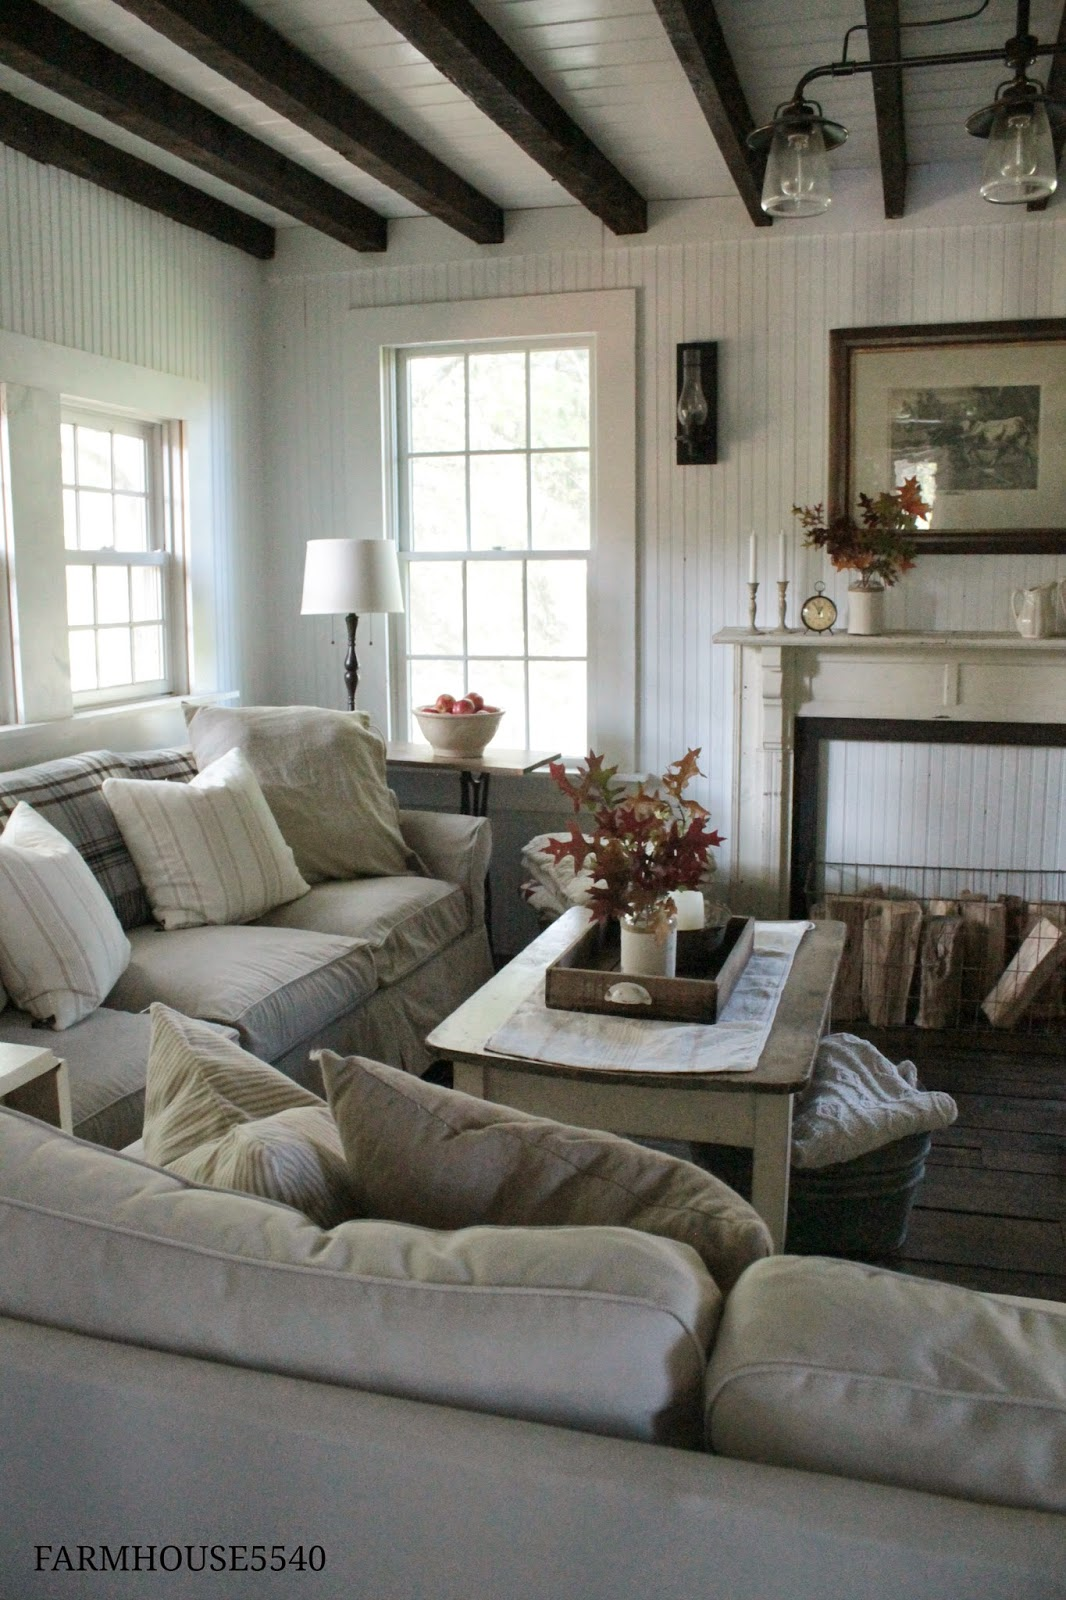 Farmhouse Living Room Decor Ideas: FARMHOUSE 5540: Autumn In The Family Room